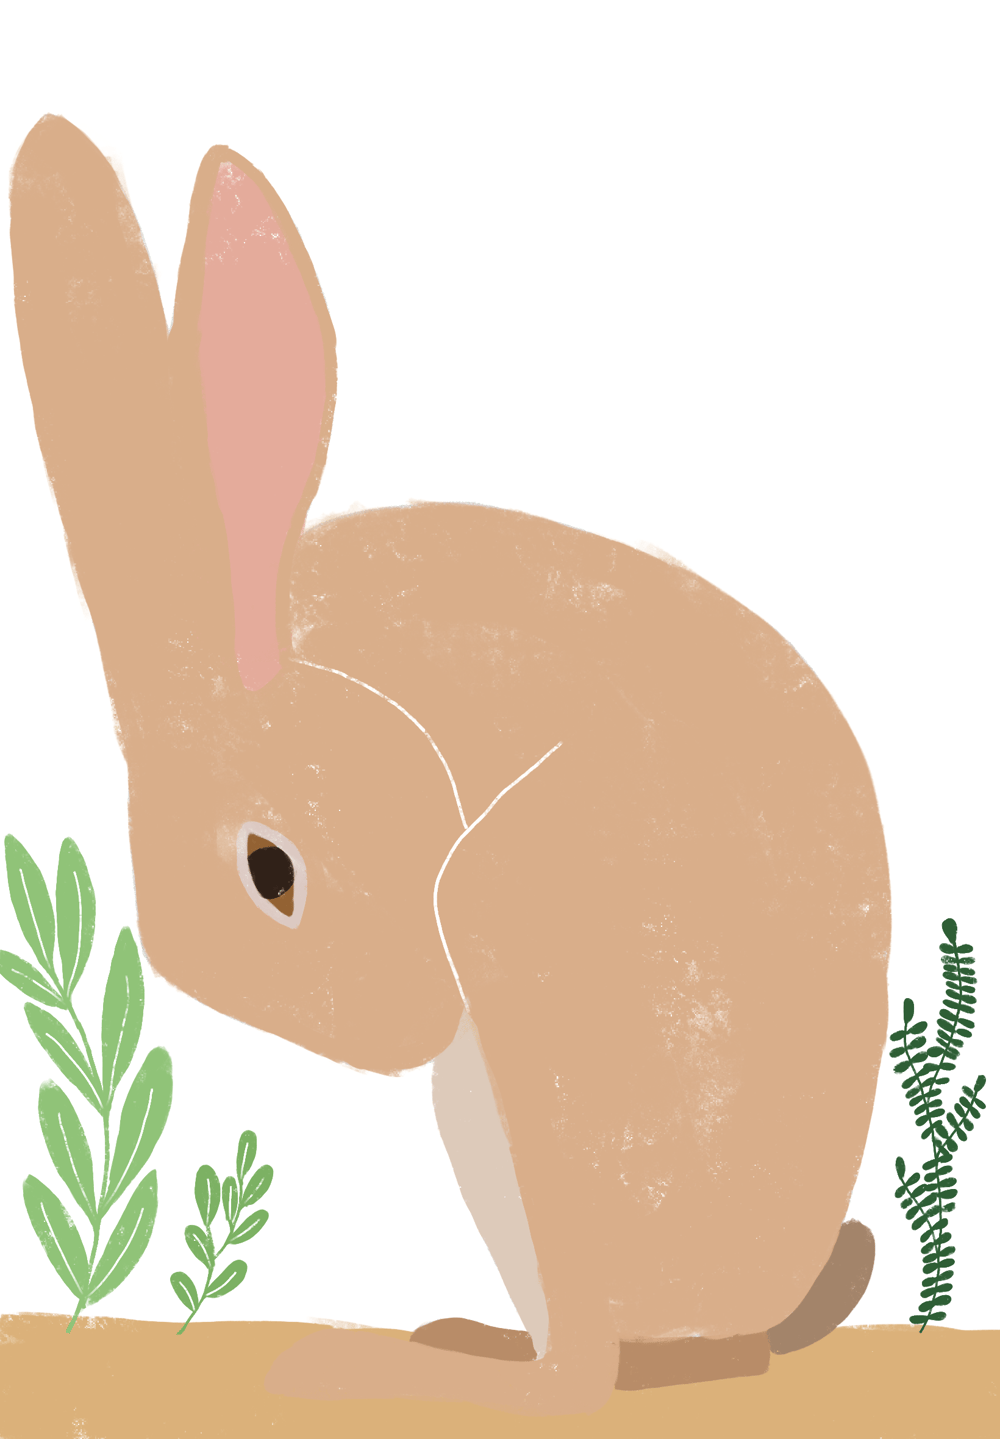 Hare - image 4 - student project